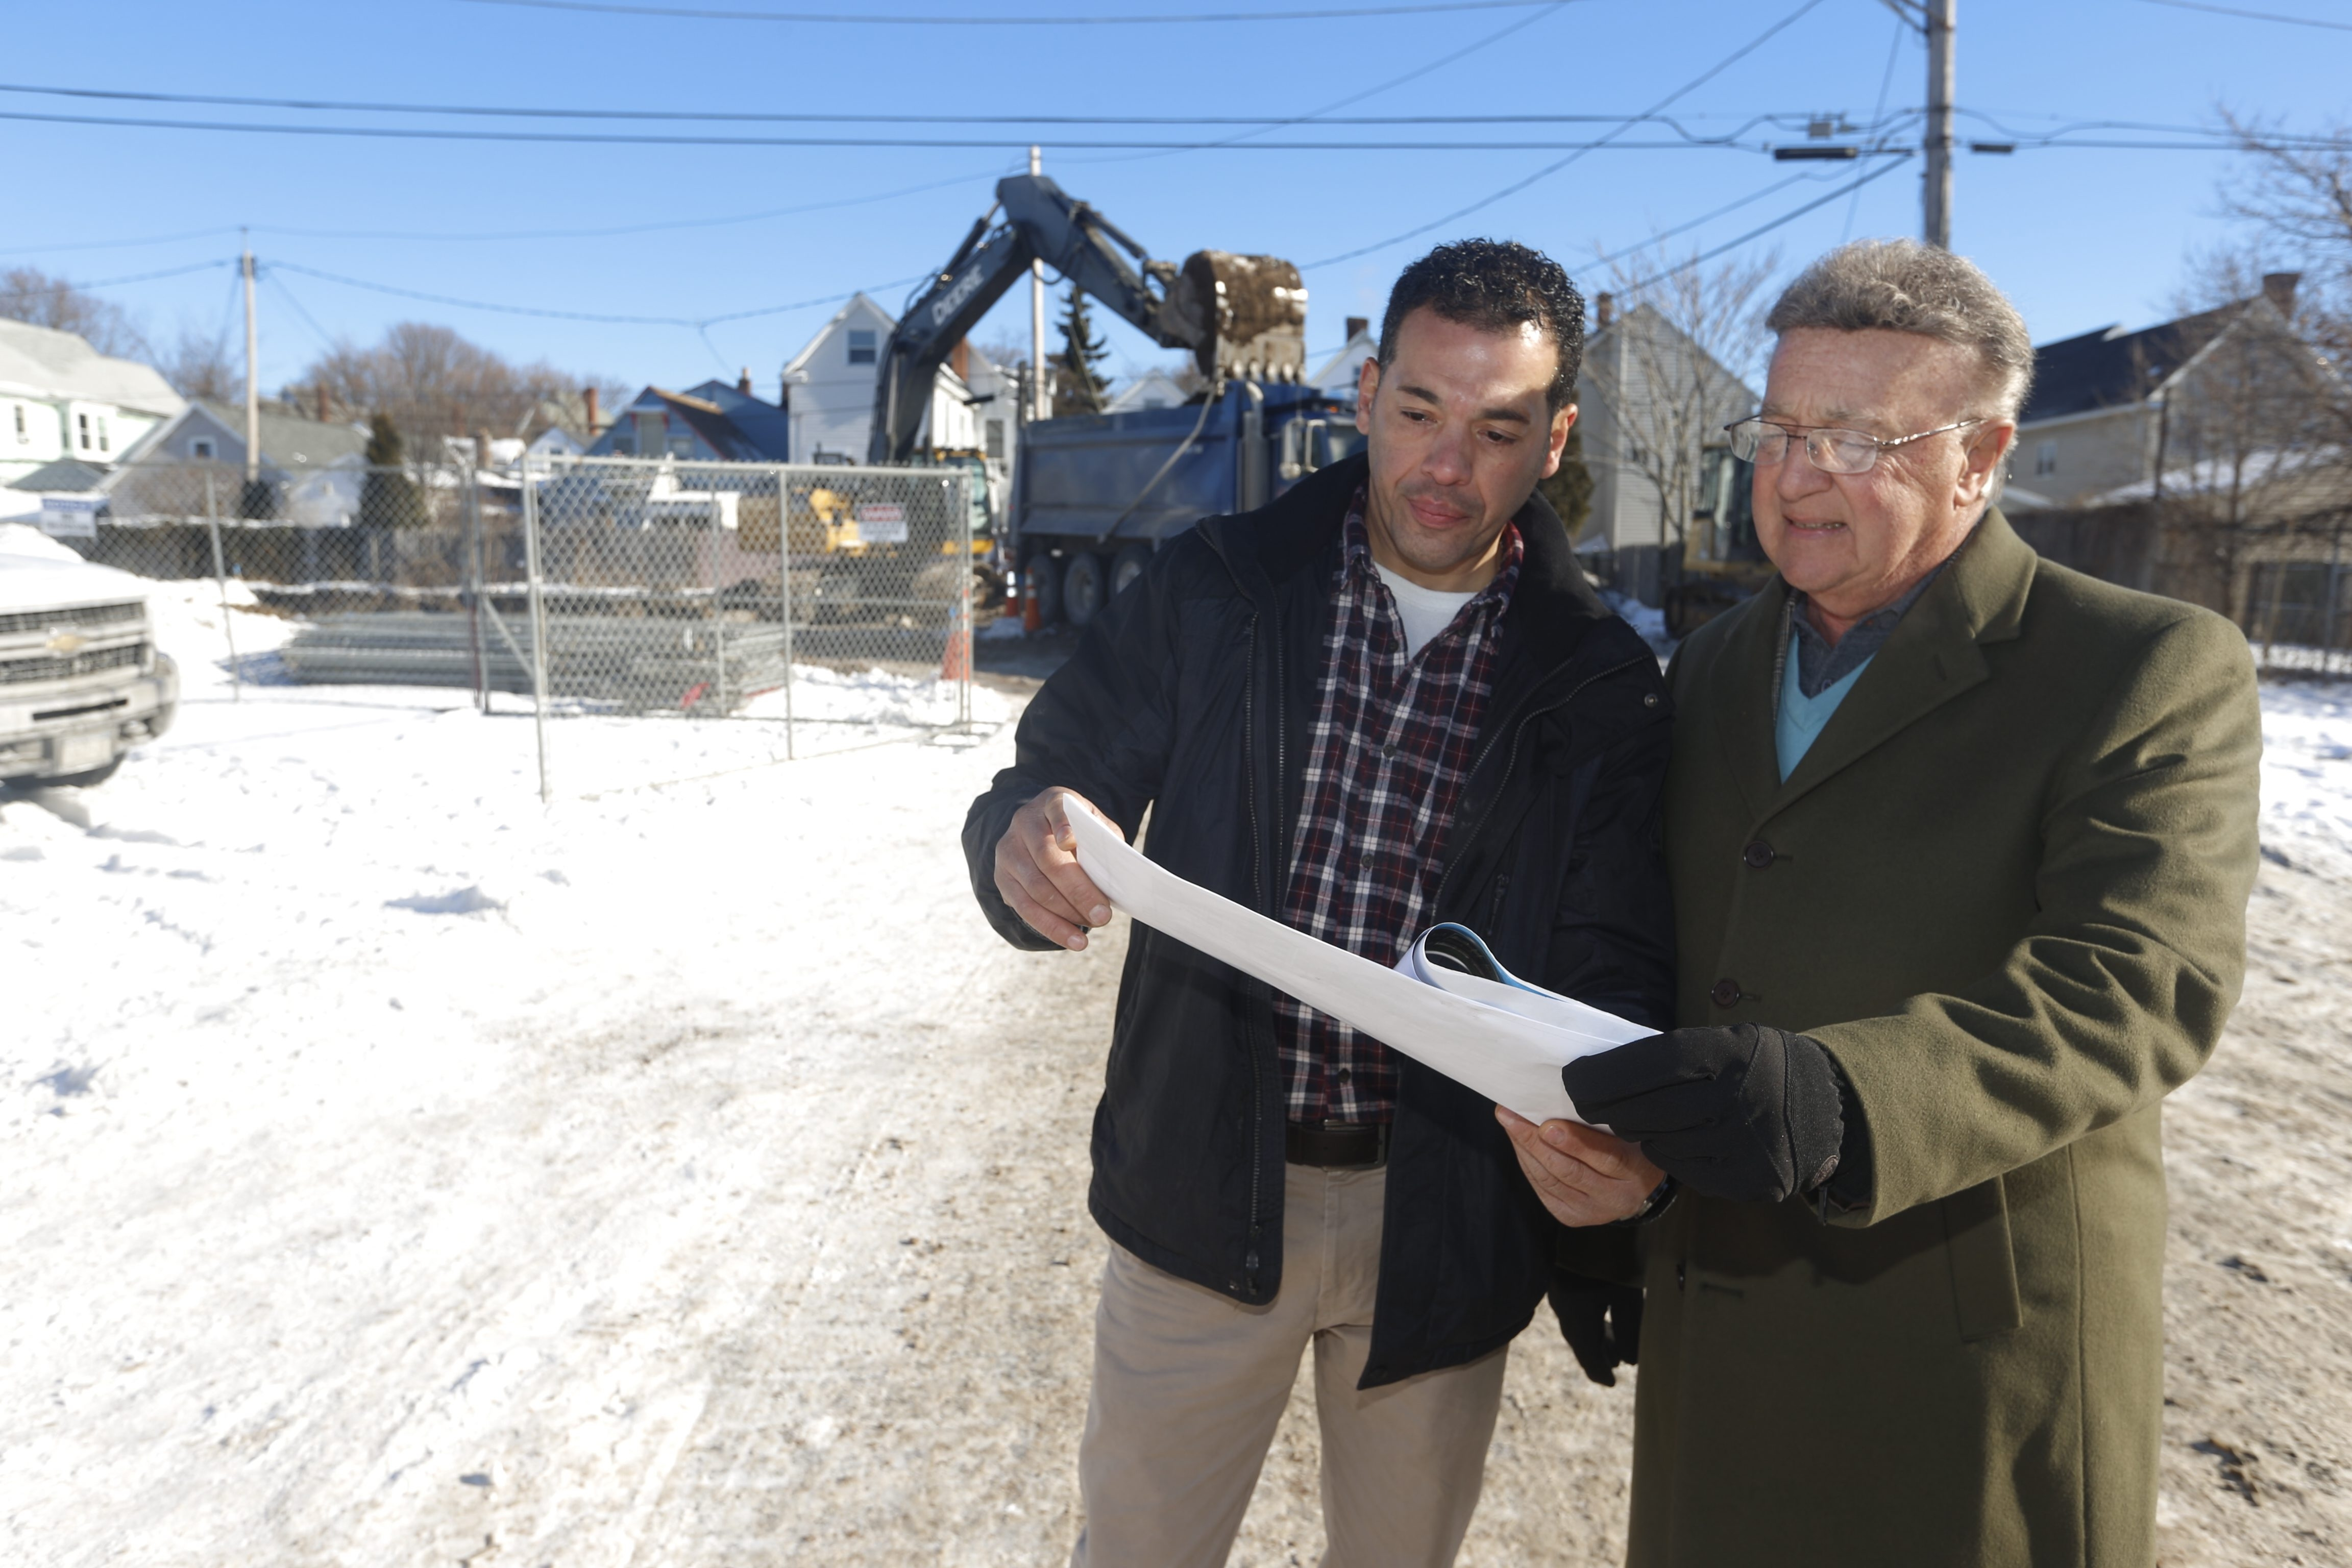 Remediation of the Maryland Street site is the first step forward for an apartment project planned by developer Anthony LoRusso, right, and his partner, Richard Gonzalez. Their proposal will go before the city Planning Board in February.